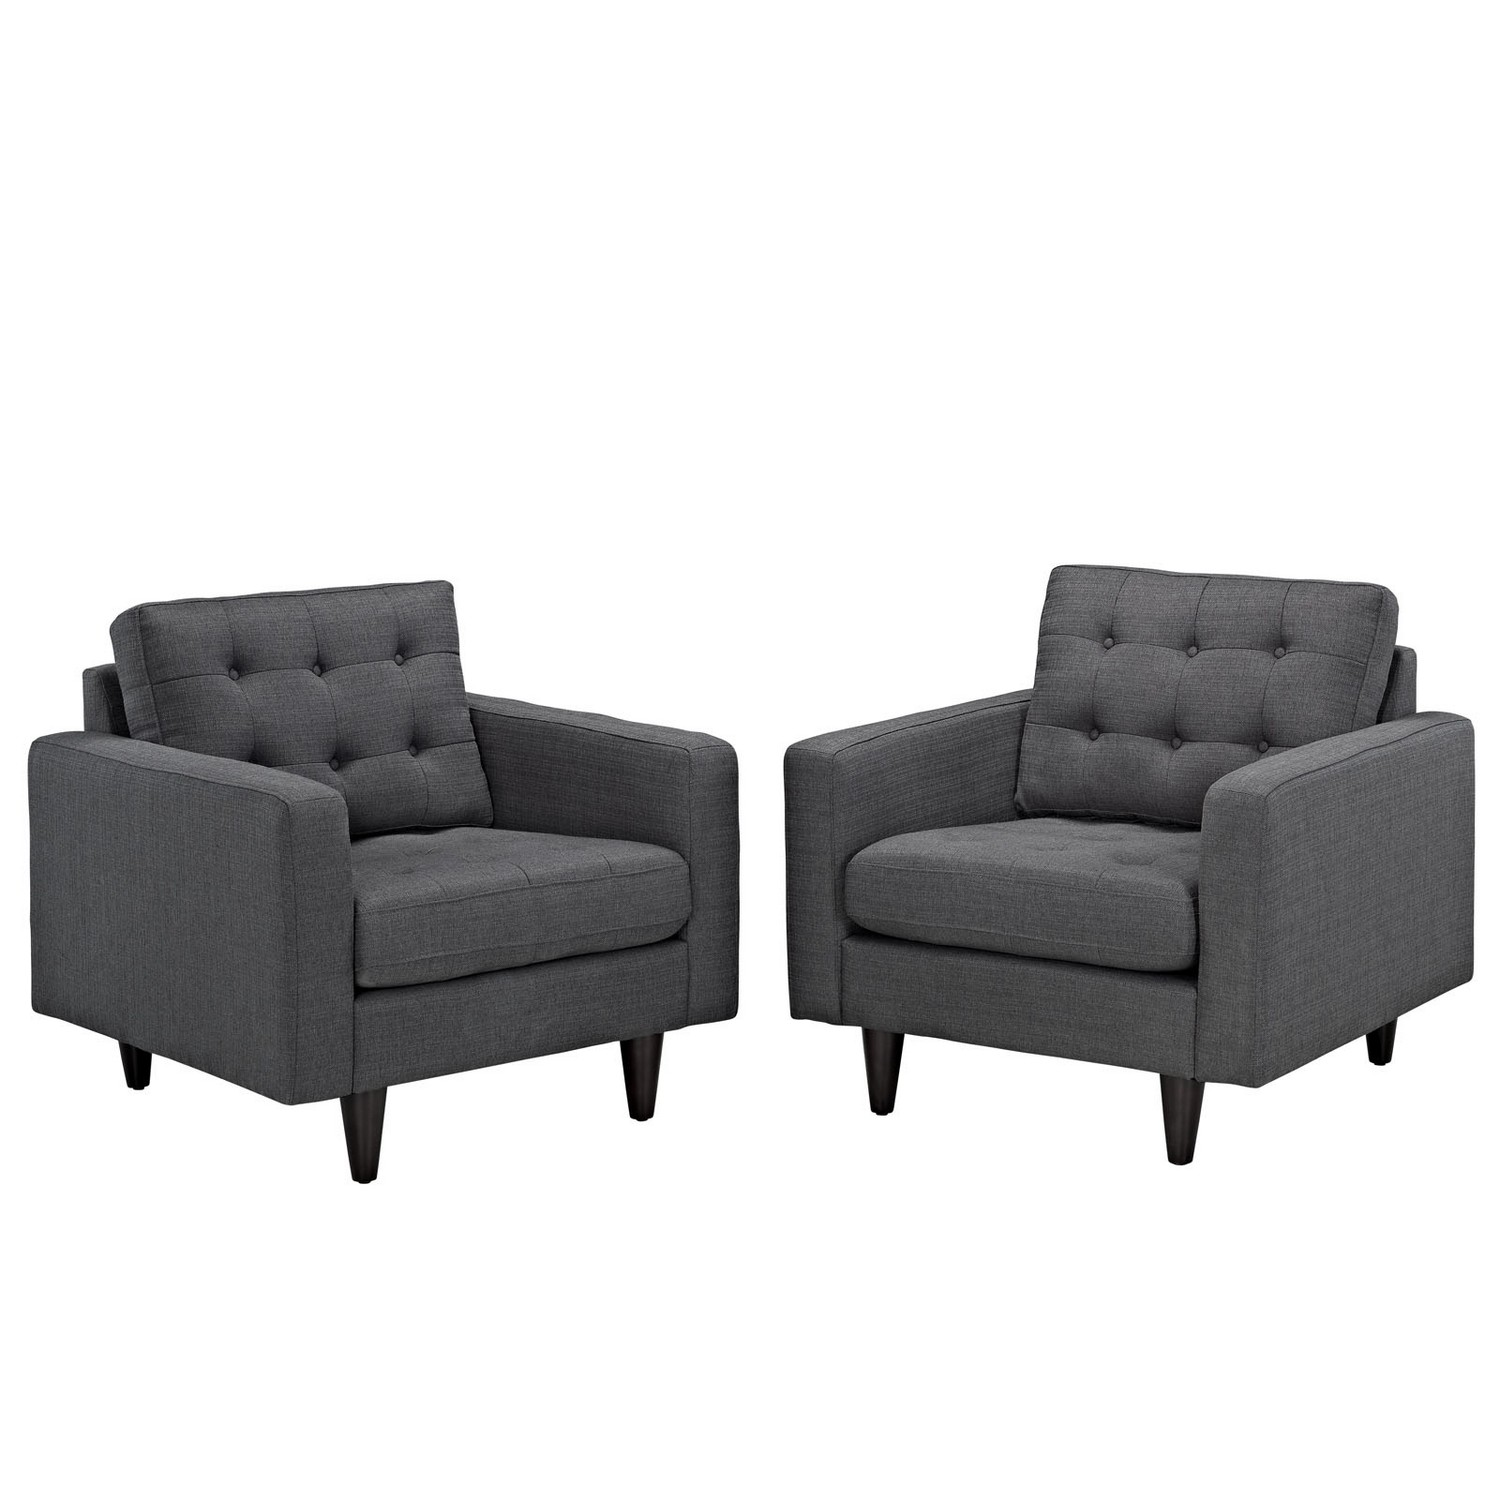 Modway Empress Armchair Upholstered Set of 2 - Gray